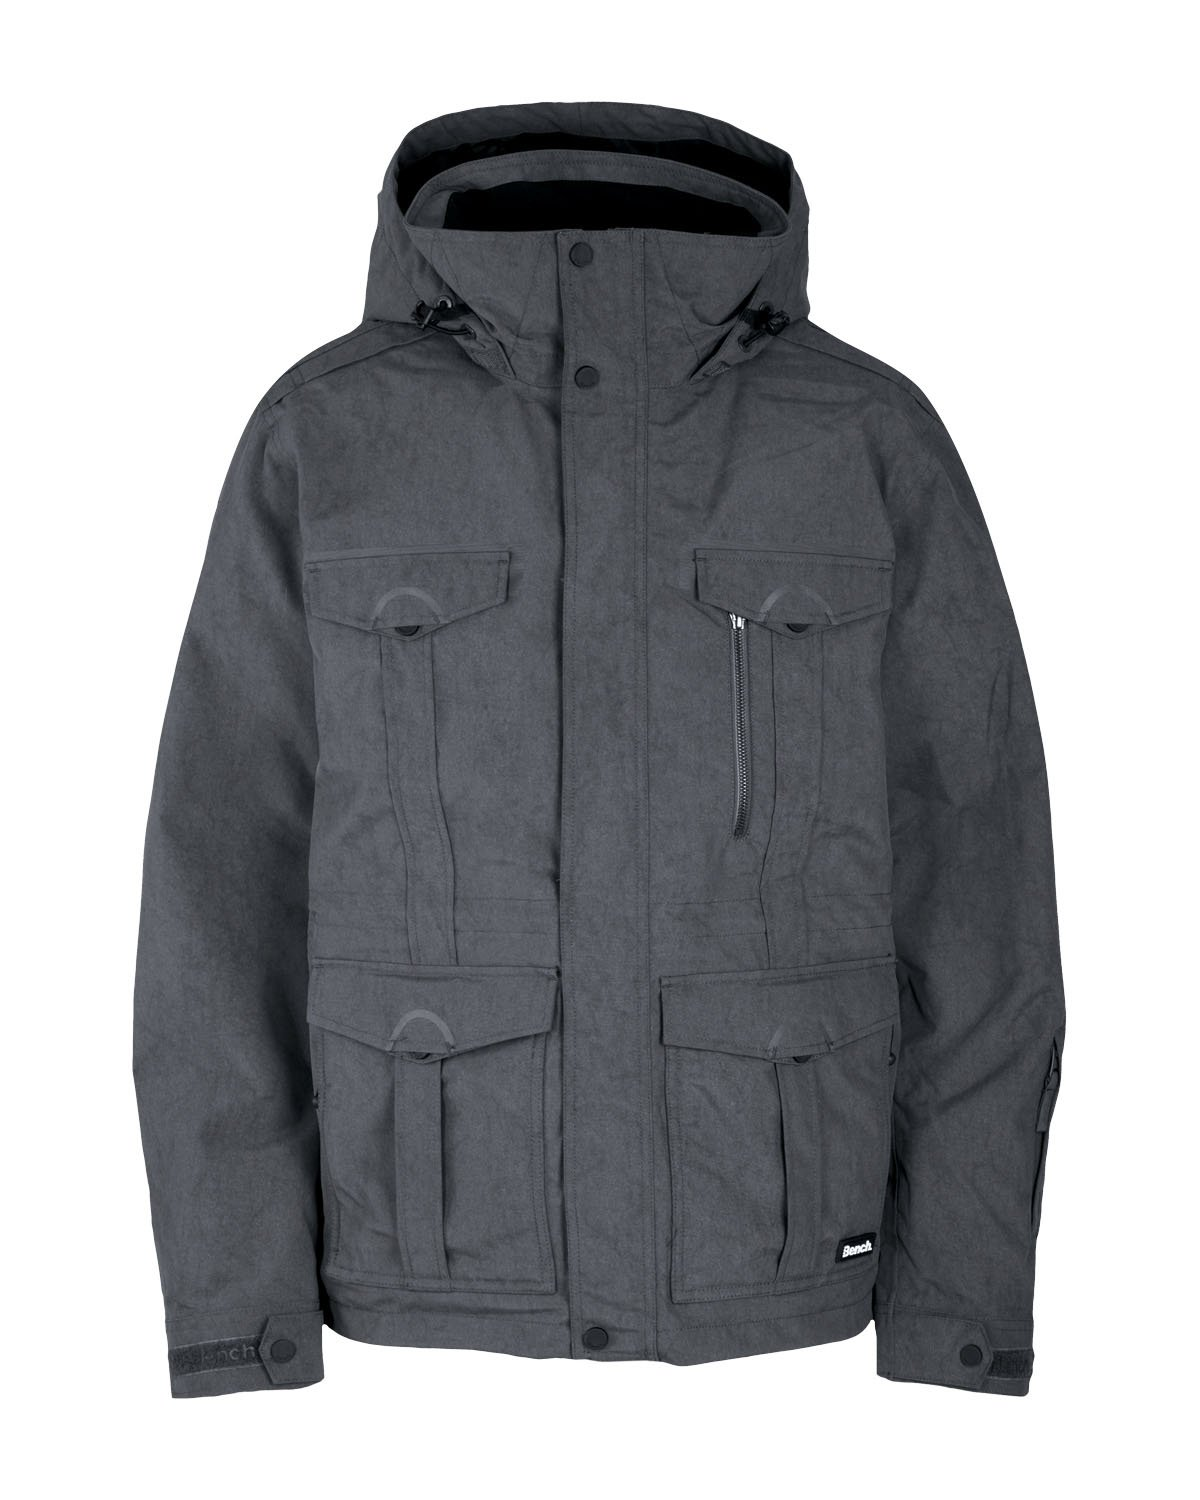 Bench Herren Funktionsjacke Mountain Marshall online kaufen